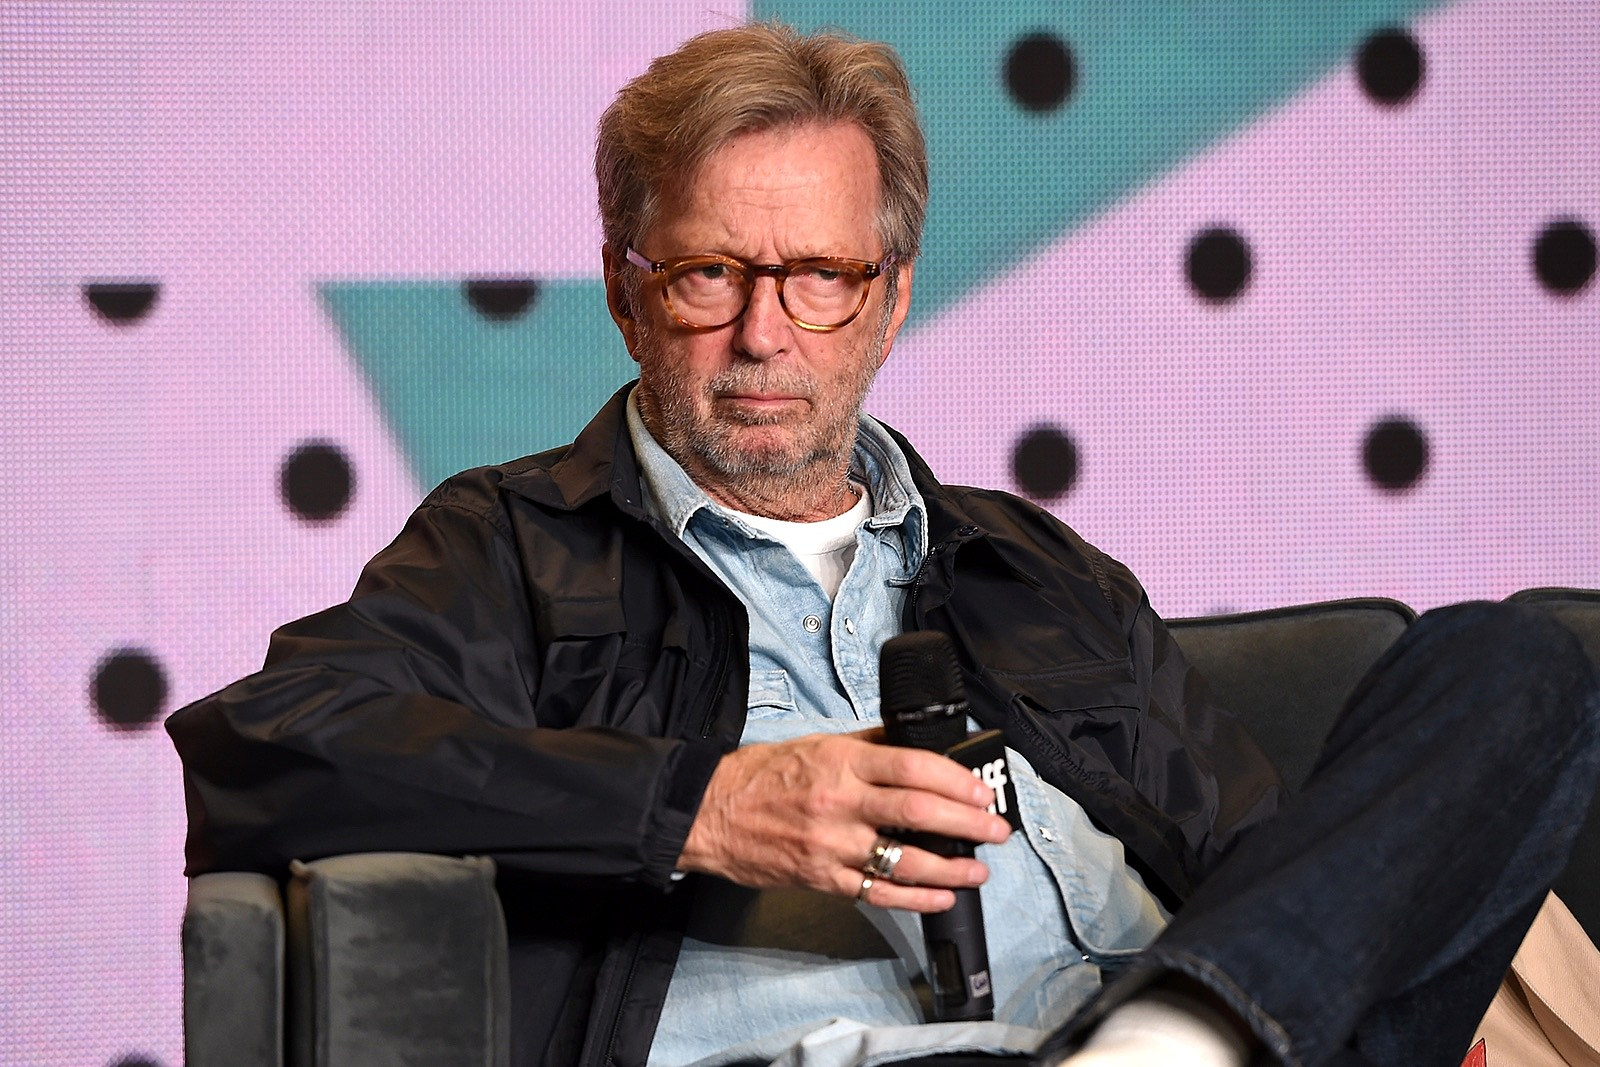 Eric Clapton Confesses Shame Over Racist Remarks